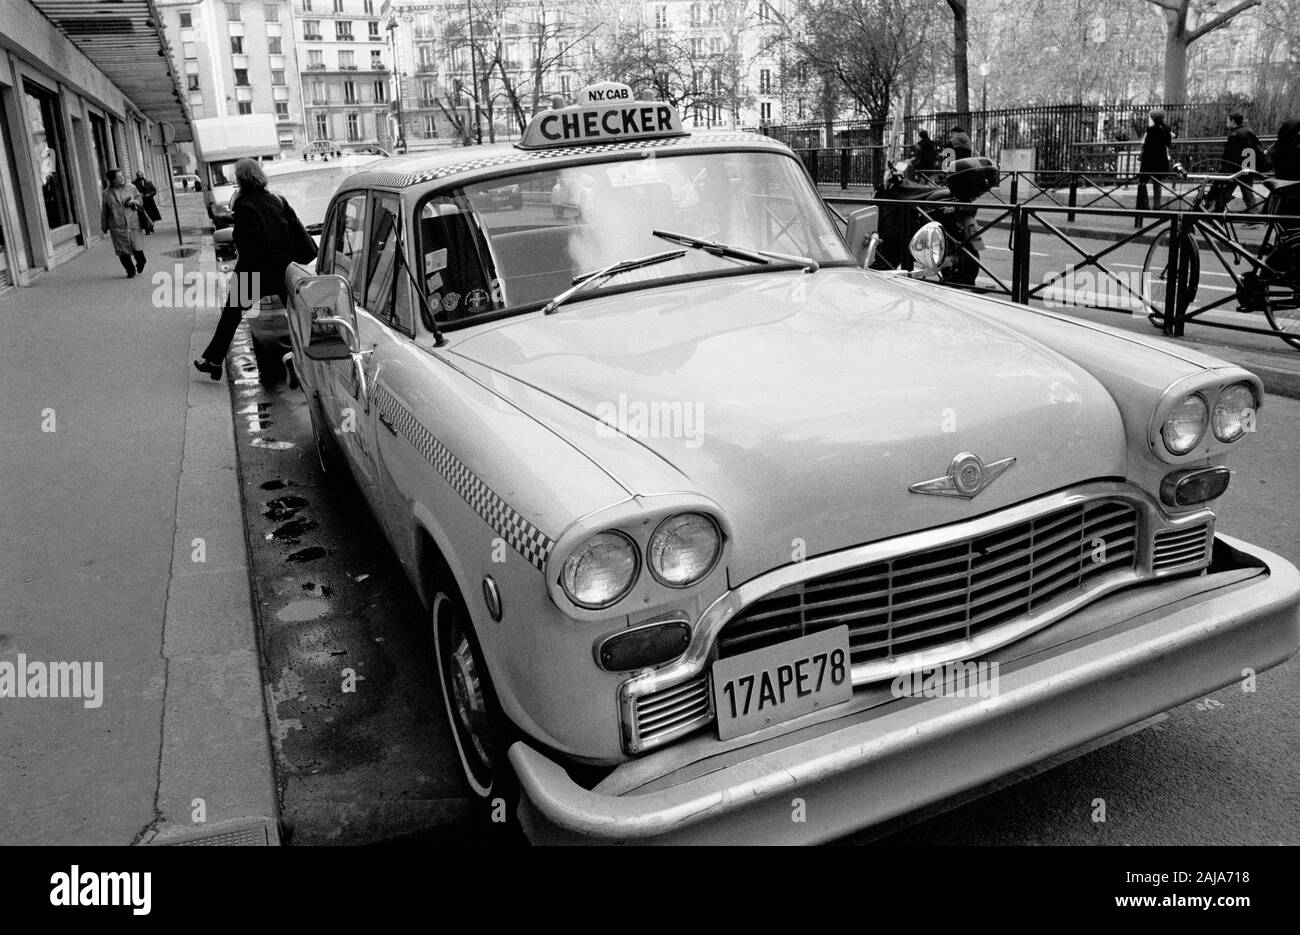 NEW YORK CAB IN PARIS STREET - CHECKER MOTORS CORPORATION - ICONIC AMERICAN TAXI - CHECKER CAB - PARIS CAR - STREET CAR PHOTOGRAPHY - SILVER IMAGE © Frédéric BEAUMONT Stock Photo